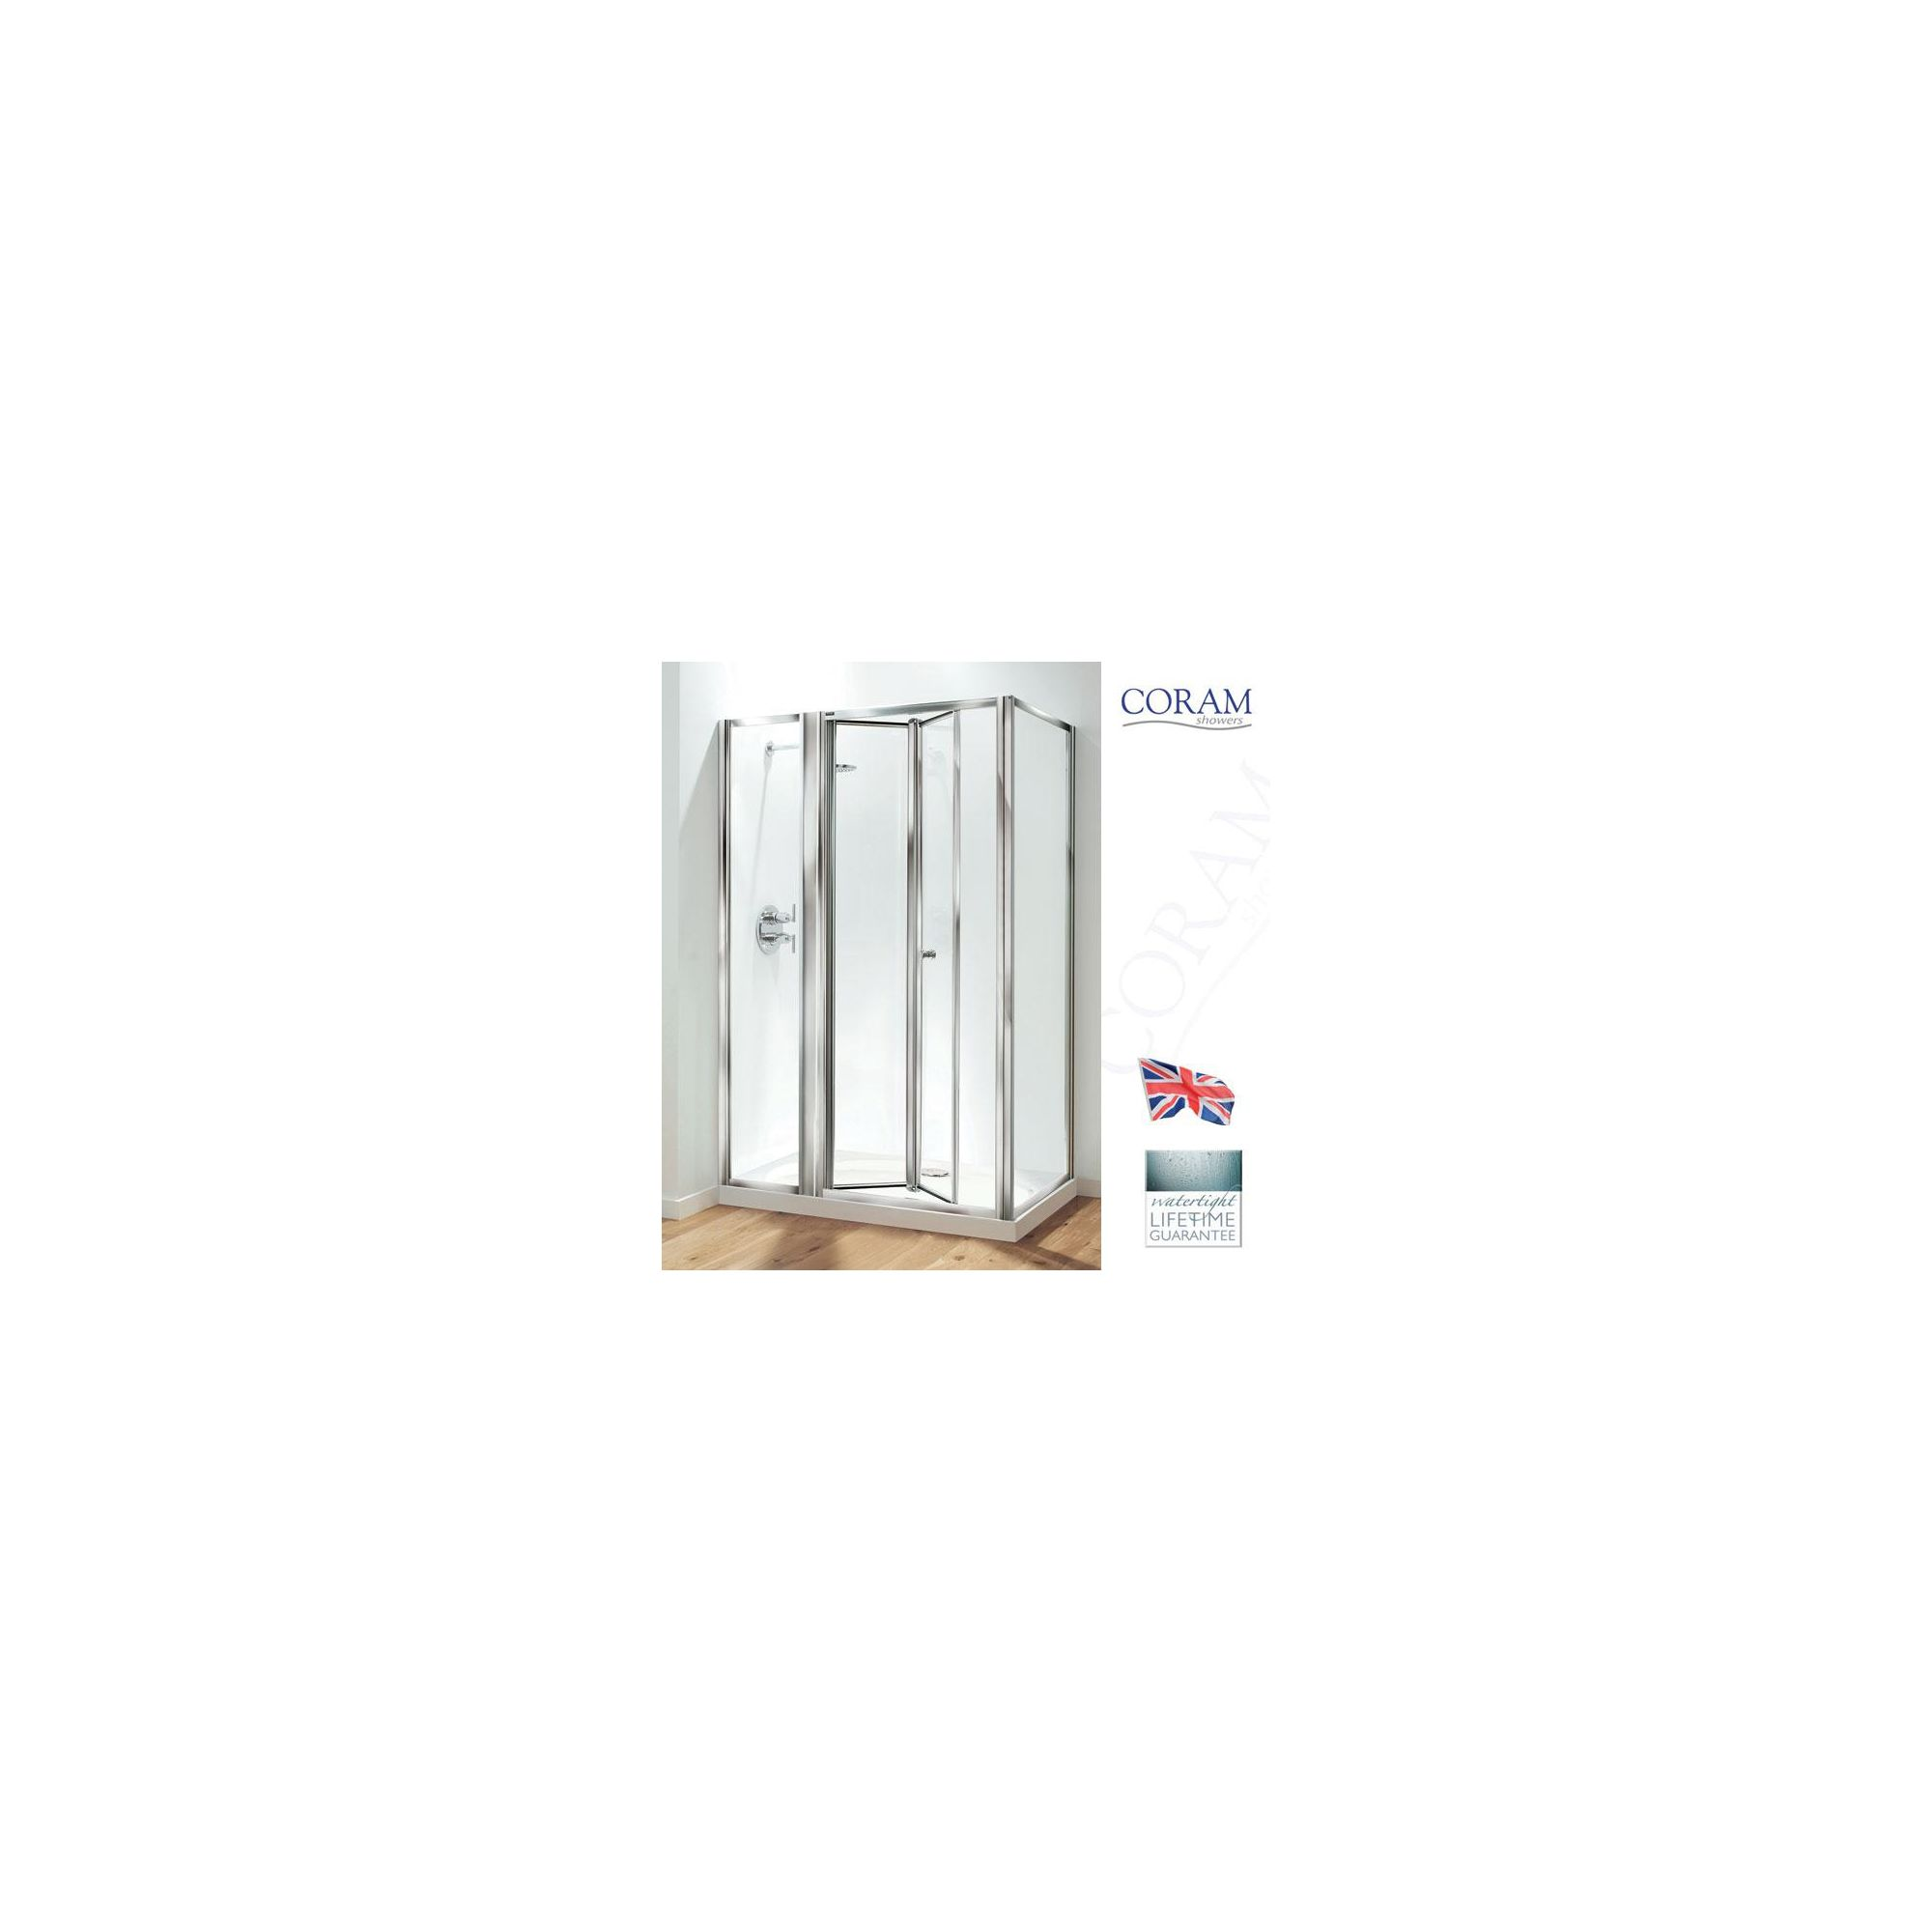 Coram Optima Inline Bi-Fold Door Shower Enclosure, 1000mm x 800mm, Low Profile Tray, 6mm Glass at Tesco Direct